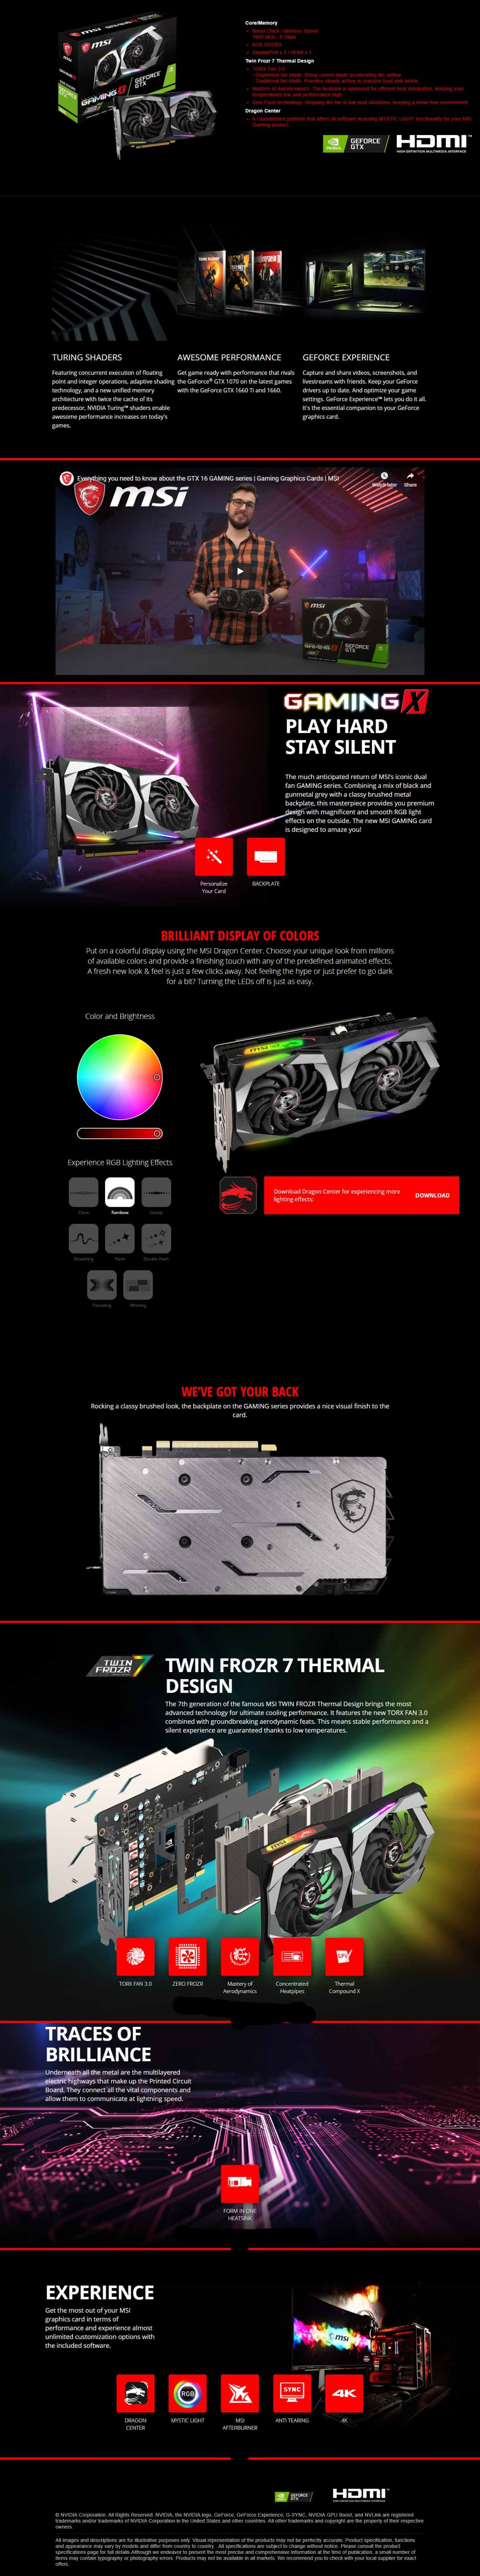 MSI GeForce GTX 1660 X 6G 6GB DDR5 Graphics Card With Dragon Center